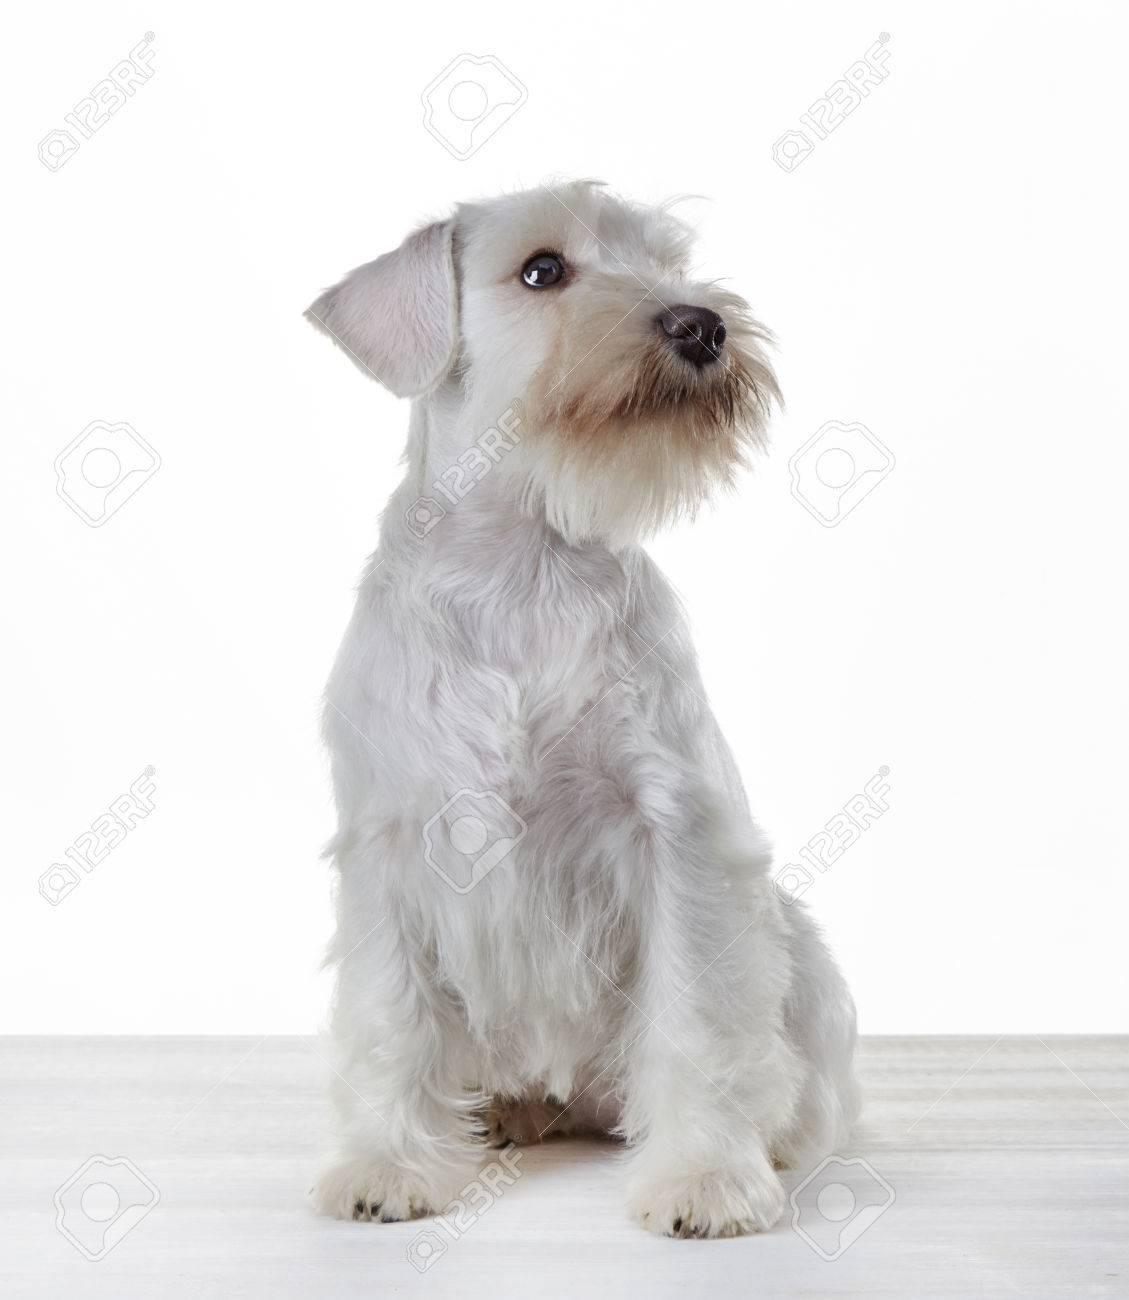 White Miniature Schnauzer Puppy 3 Month Old Stock Photo Picture And Royalty Free Image Image 22623458